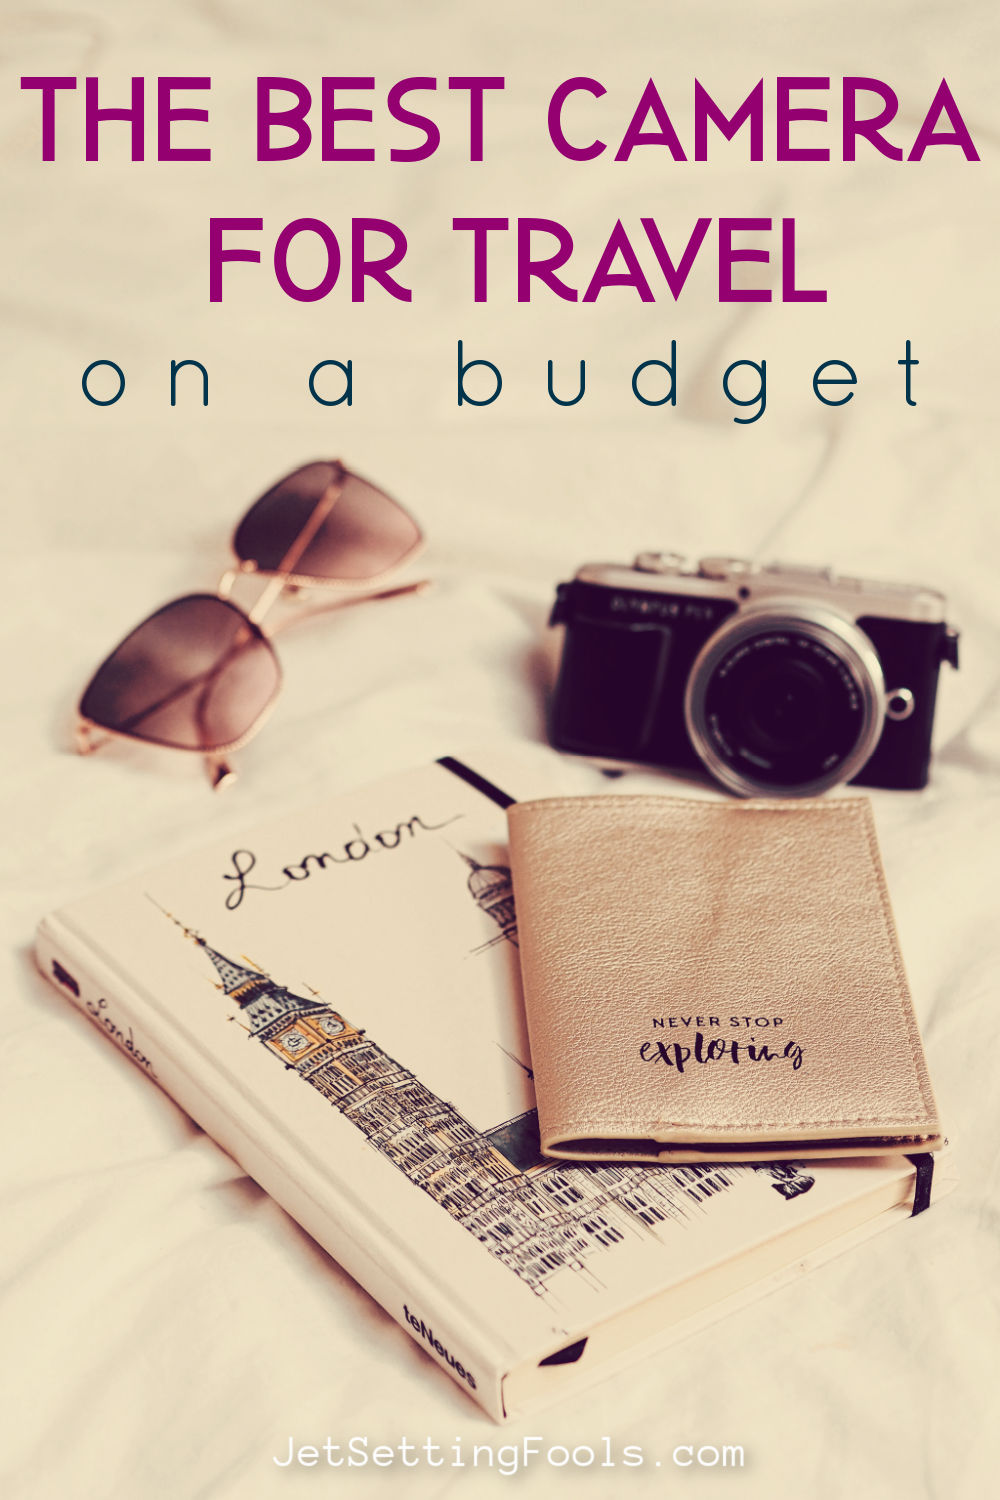 The Best Camera for Travel on a Budget by JetSettingFools.com